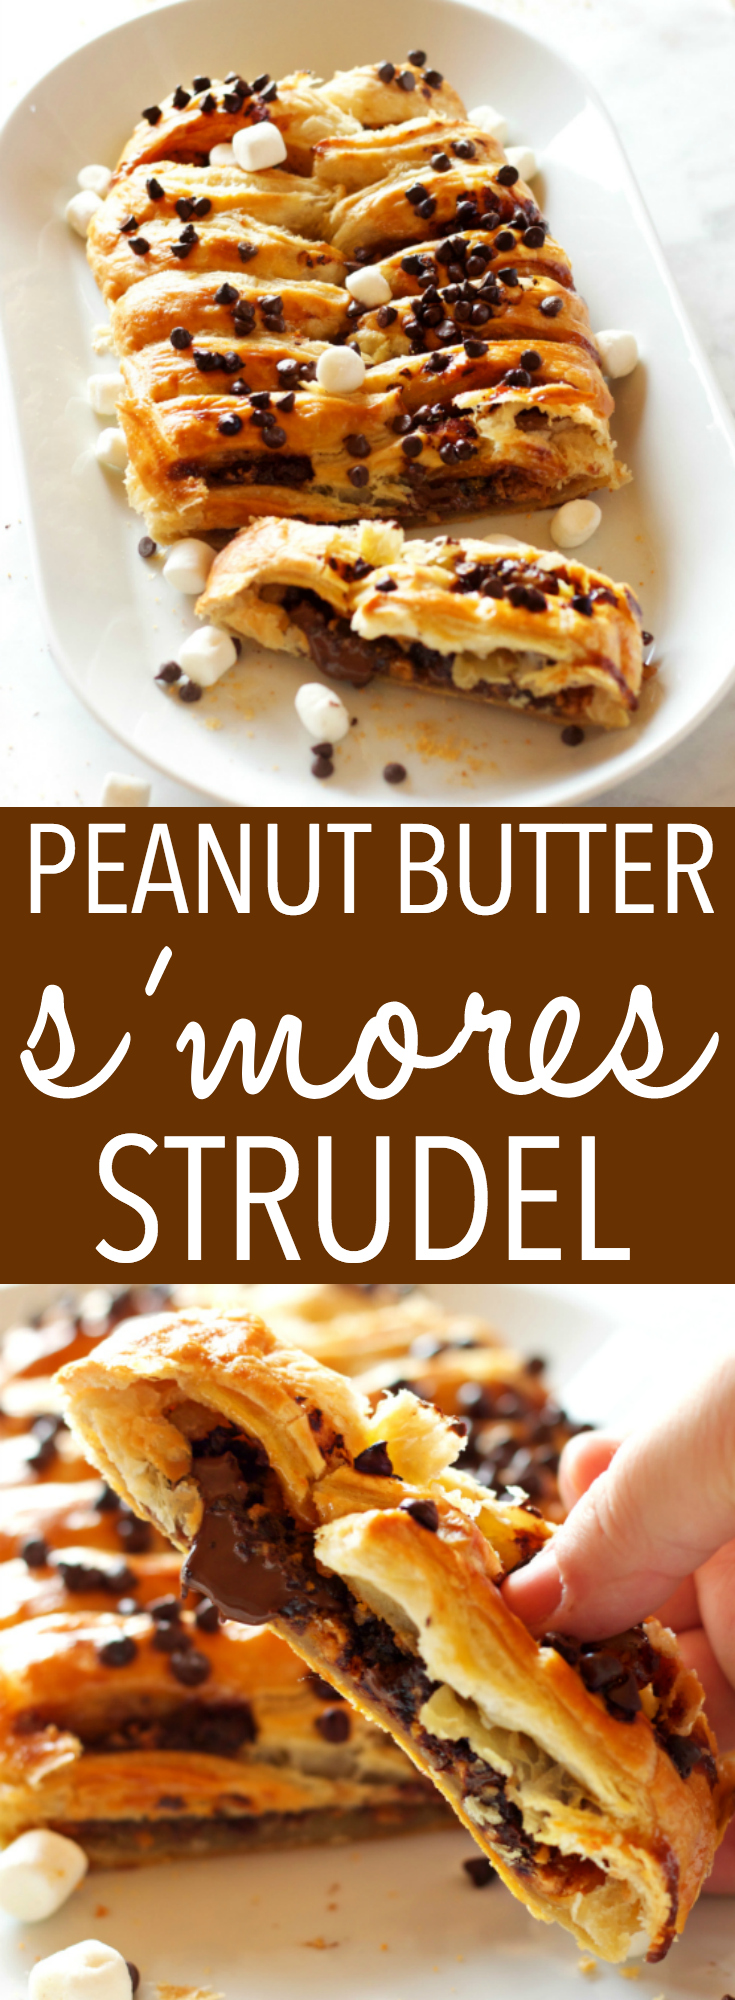 This Easy Peanut Butter S'mores Strudel is an easy recipe that makes the perfect breakfast or treat - made with only a few simple pantry ingredients! Recipe from thebusybaker.ca! #smores #homemadestrudel #smoresdessert #easybreakfast via @busybakerblog